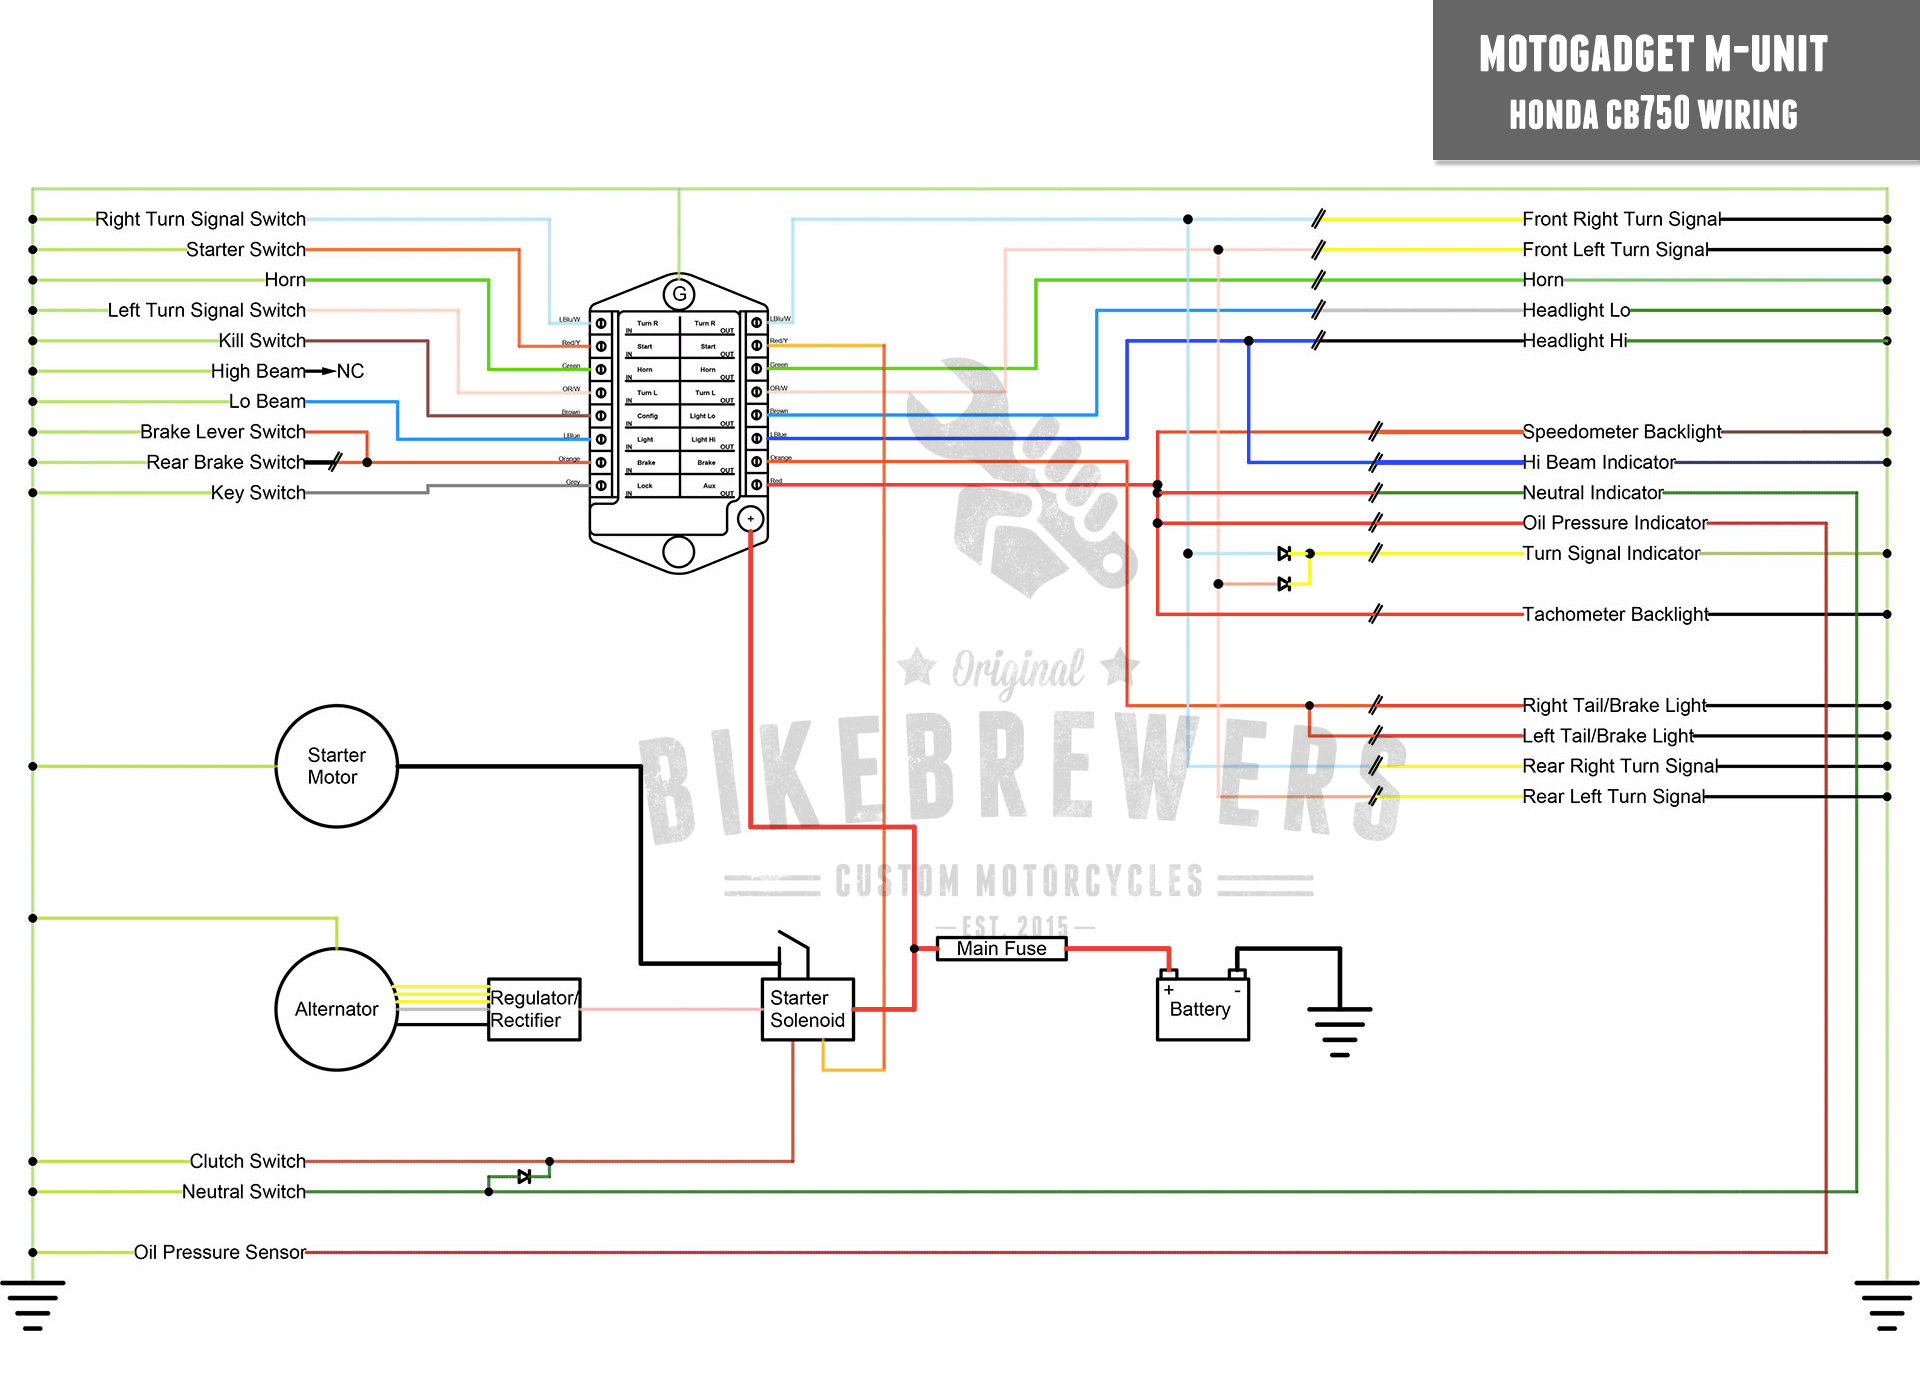 honda lead wiring diagram wiring library rh 8 skriptoase de Honda Civic Wiring Schematics 50Cc Scooter